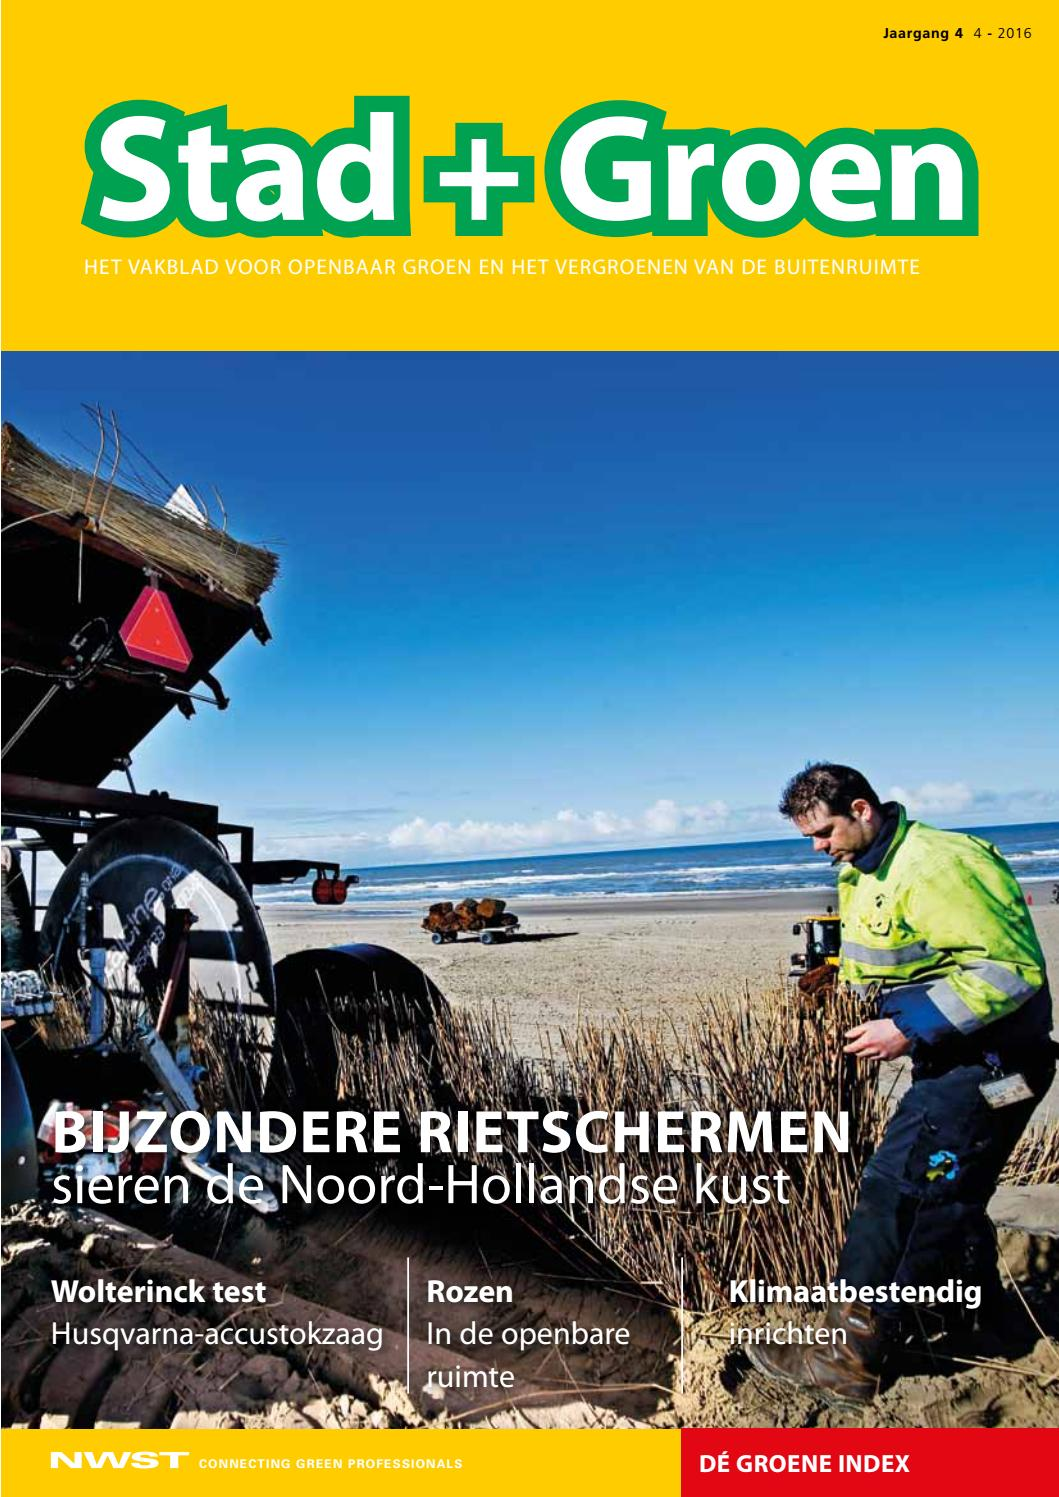 Stad en groen 8 2015 by nwst newstories   issuu